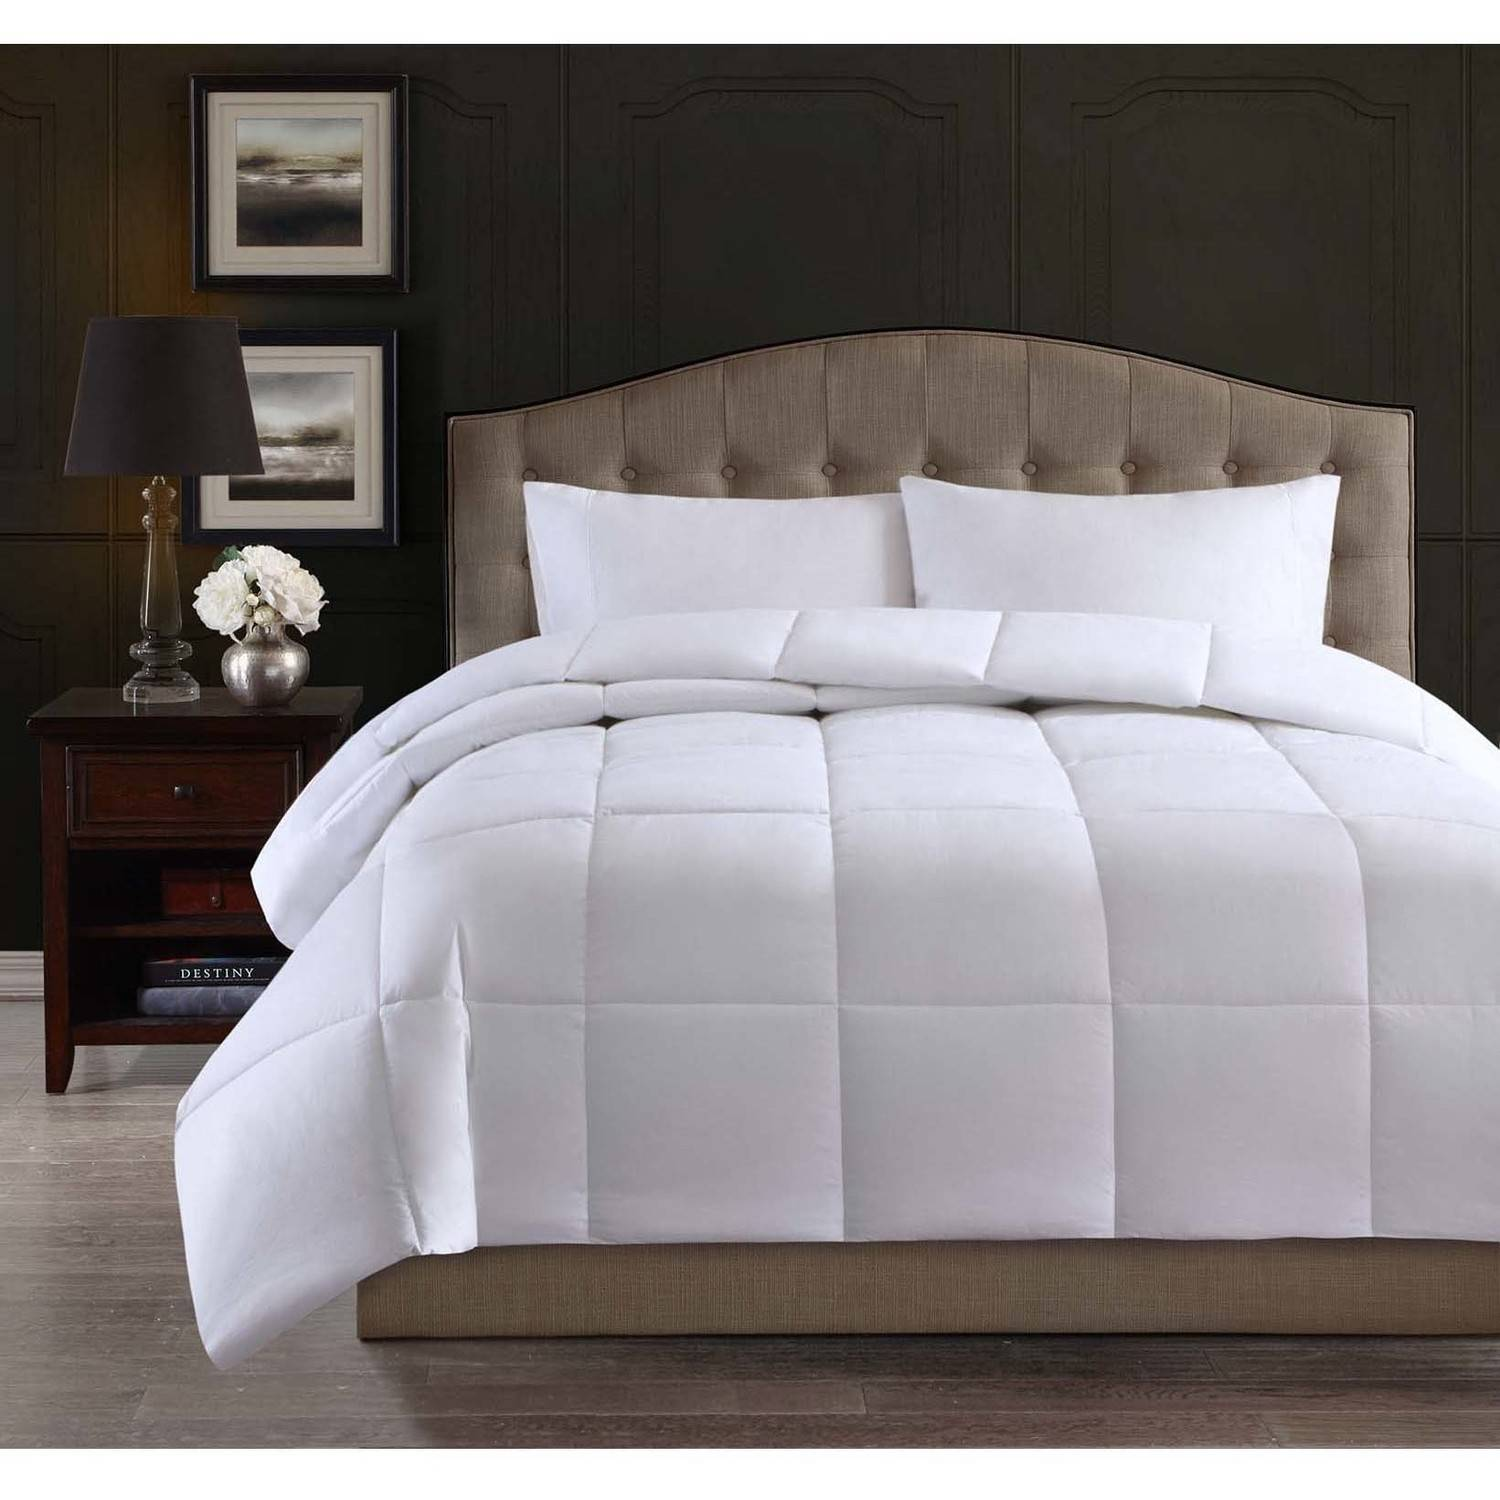 Hotel Style 300-Thread-Count Down Alternative Bedding Comforter